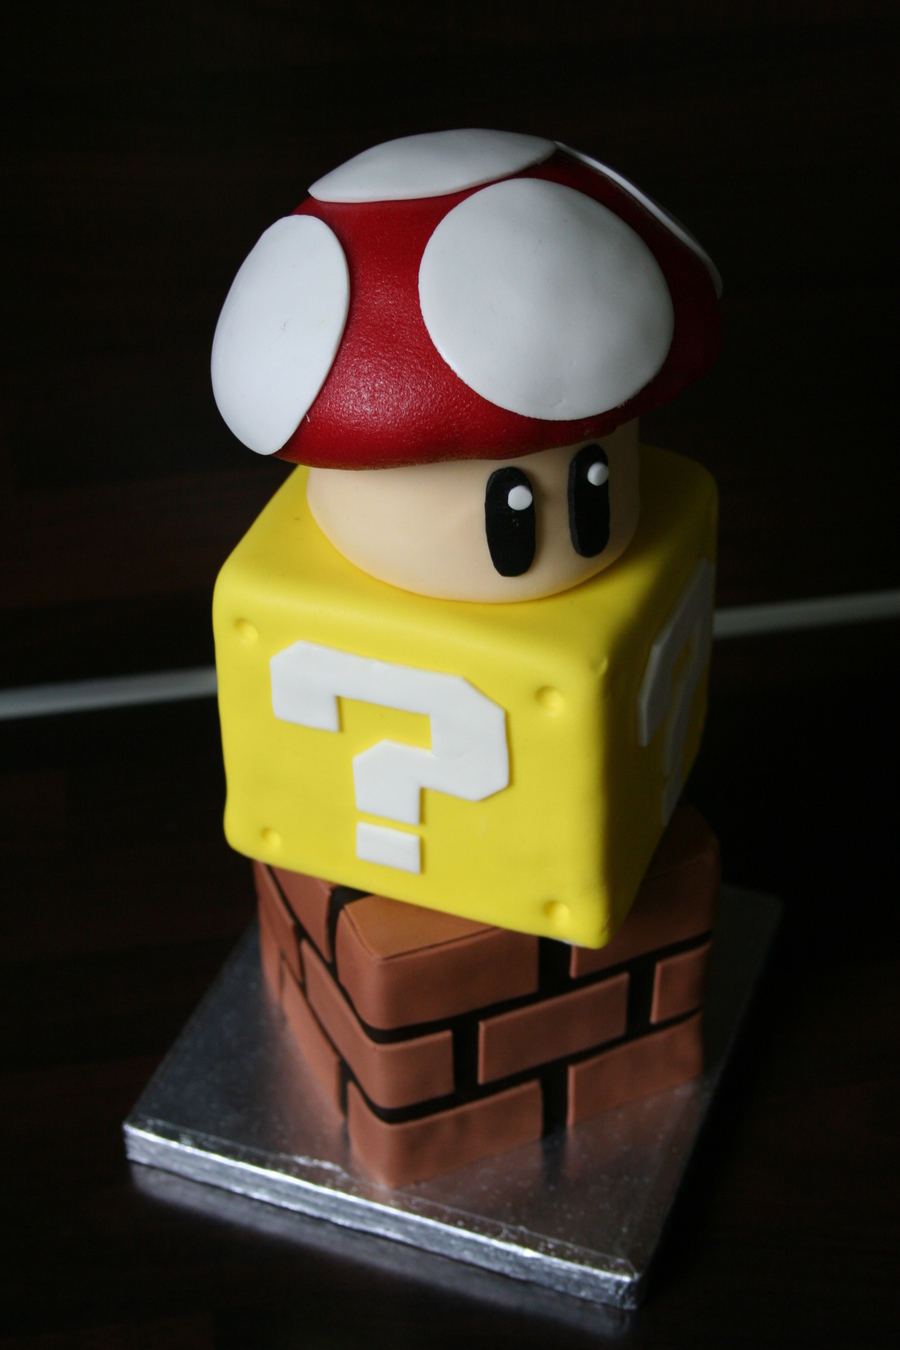 My Husband Likes To Collect All Sorts Of Super Mario Things So I Made Him This Birthday Cake The Cubes Are Both 10 By 10 Cm 39 By 39 I on Cake Central